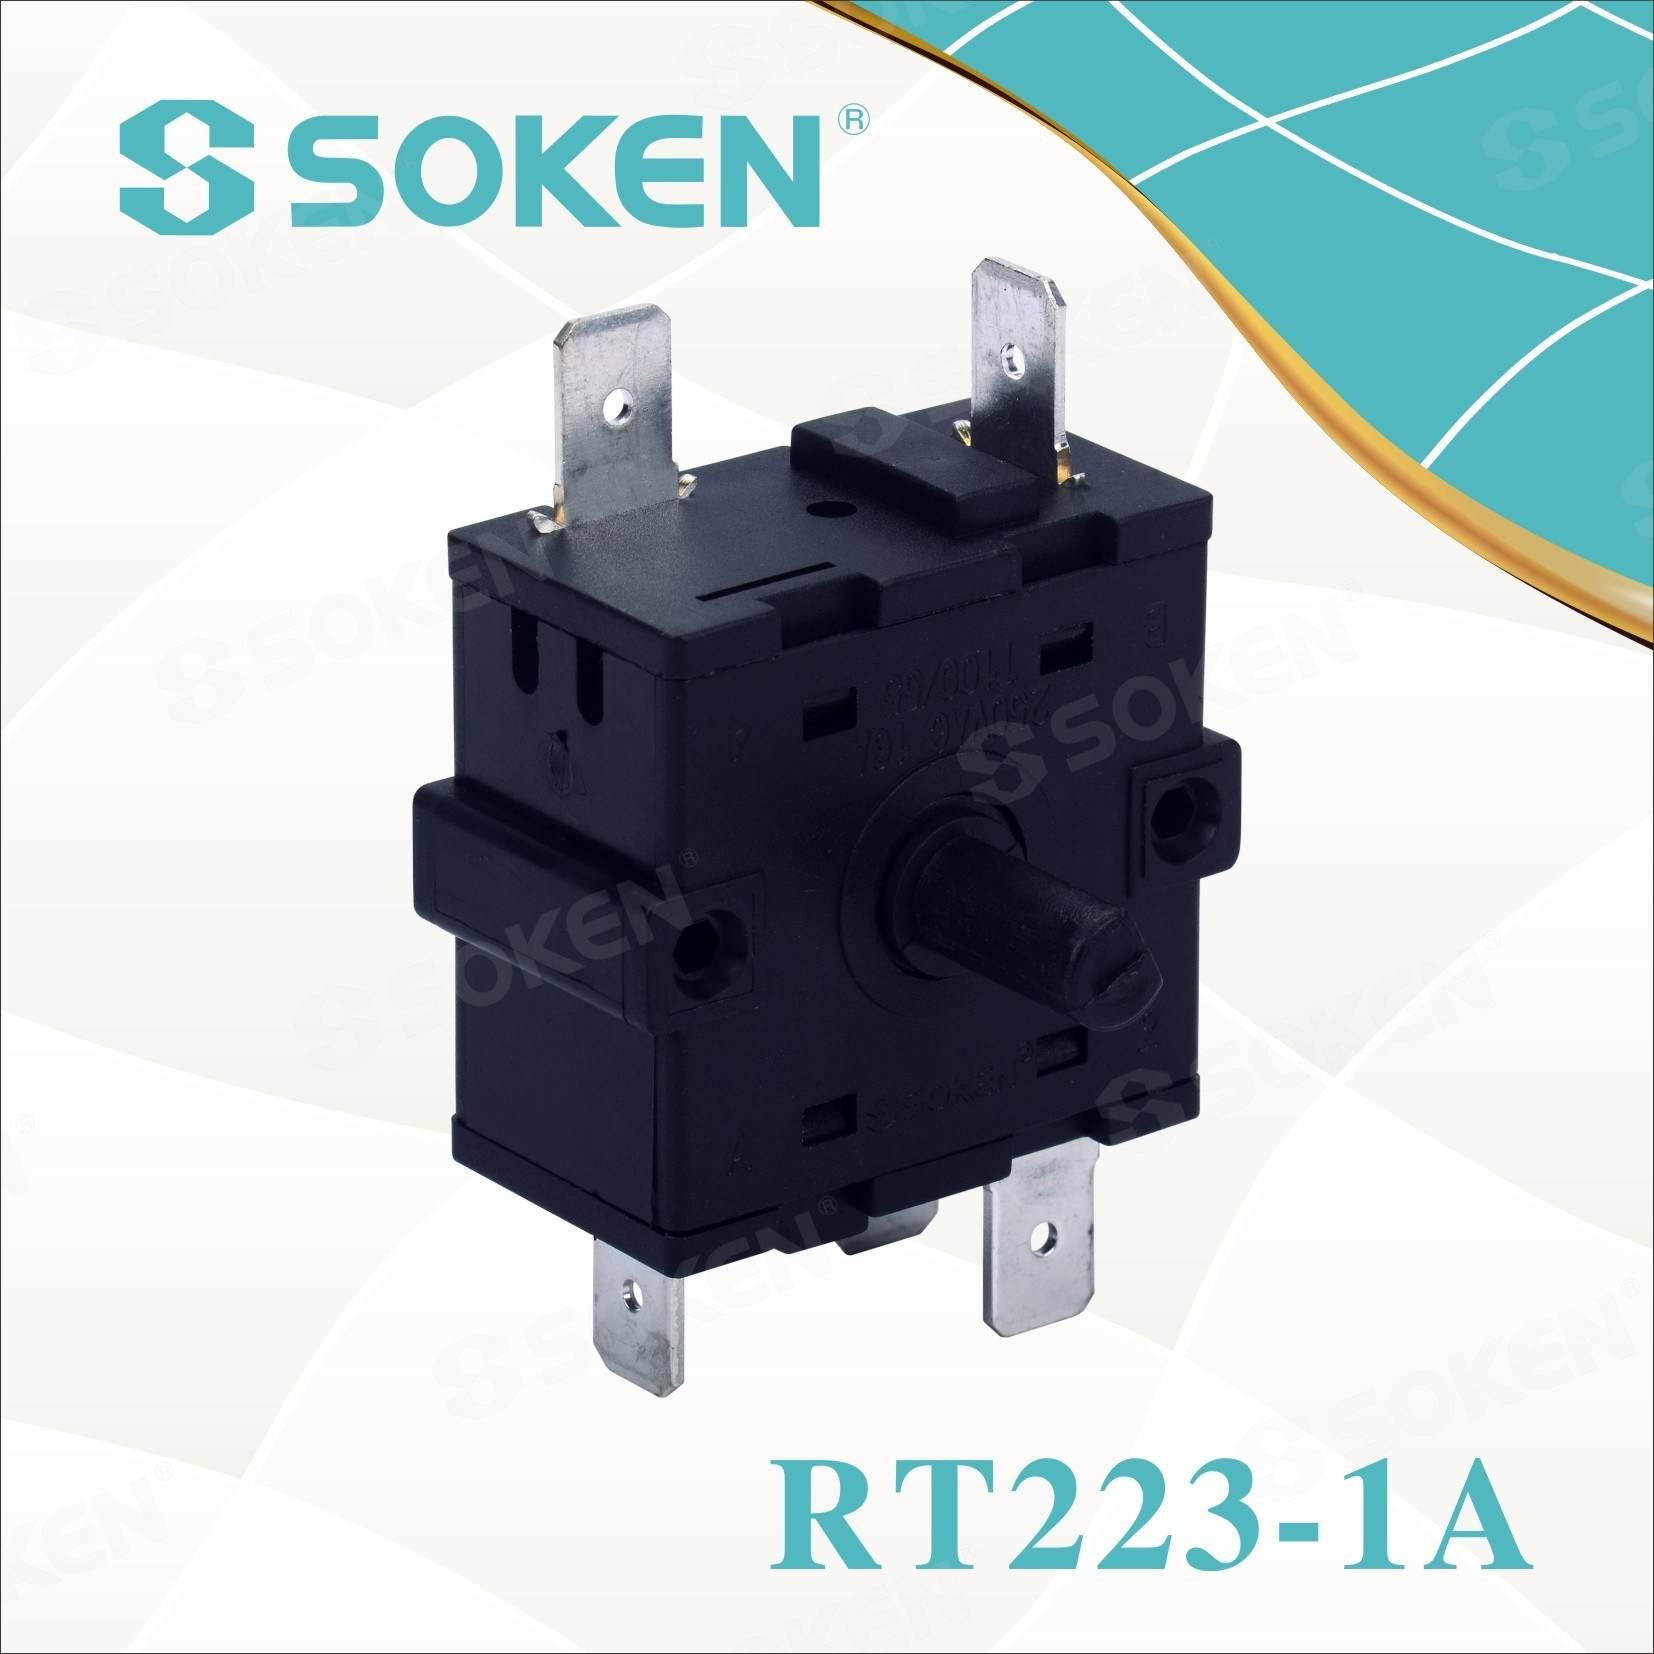 Quots for Round Cap Push Button Switches -